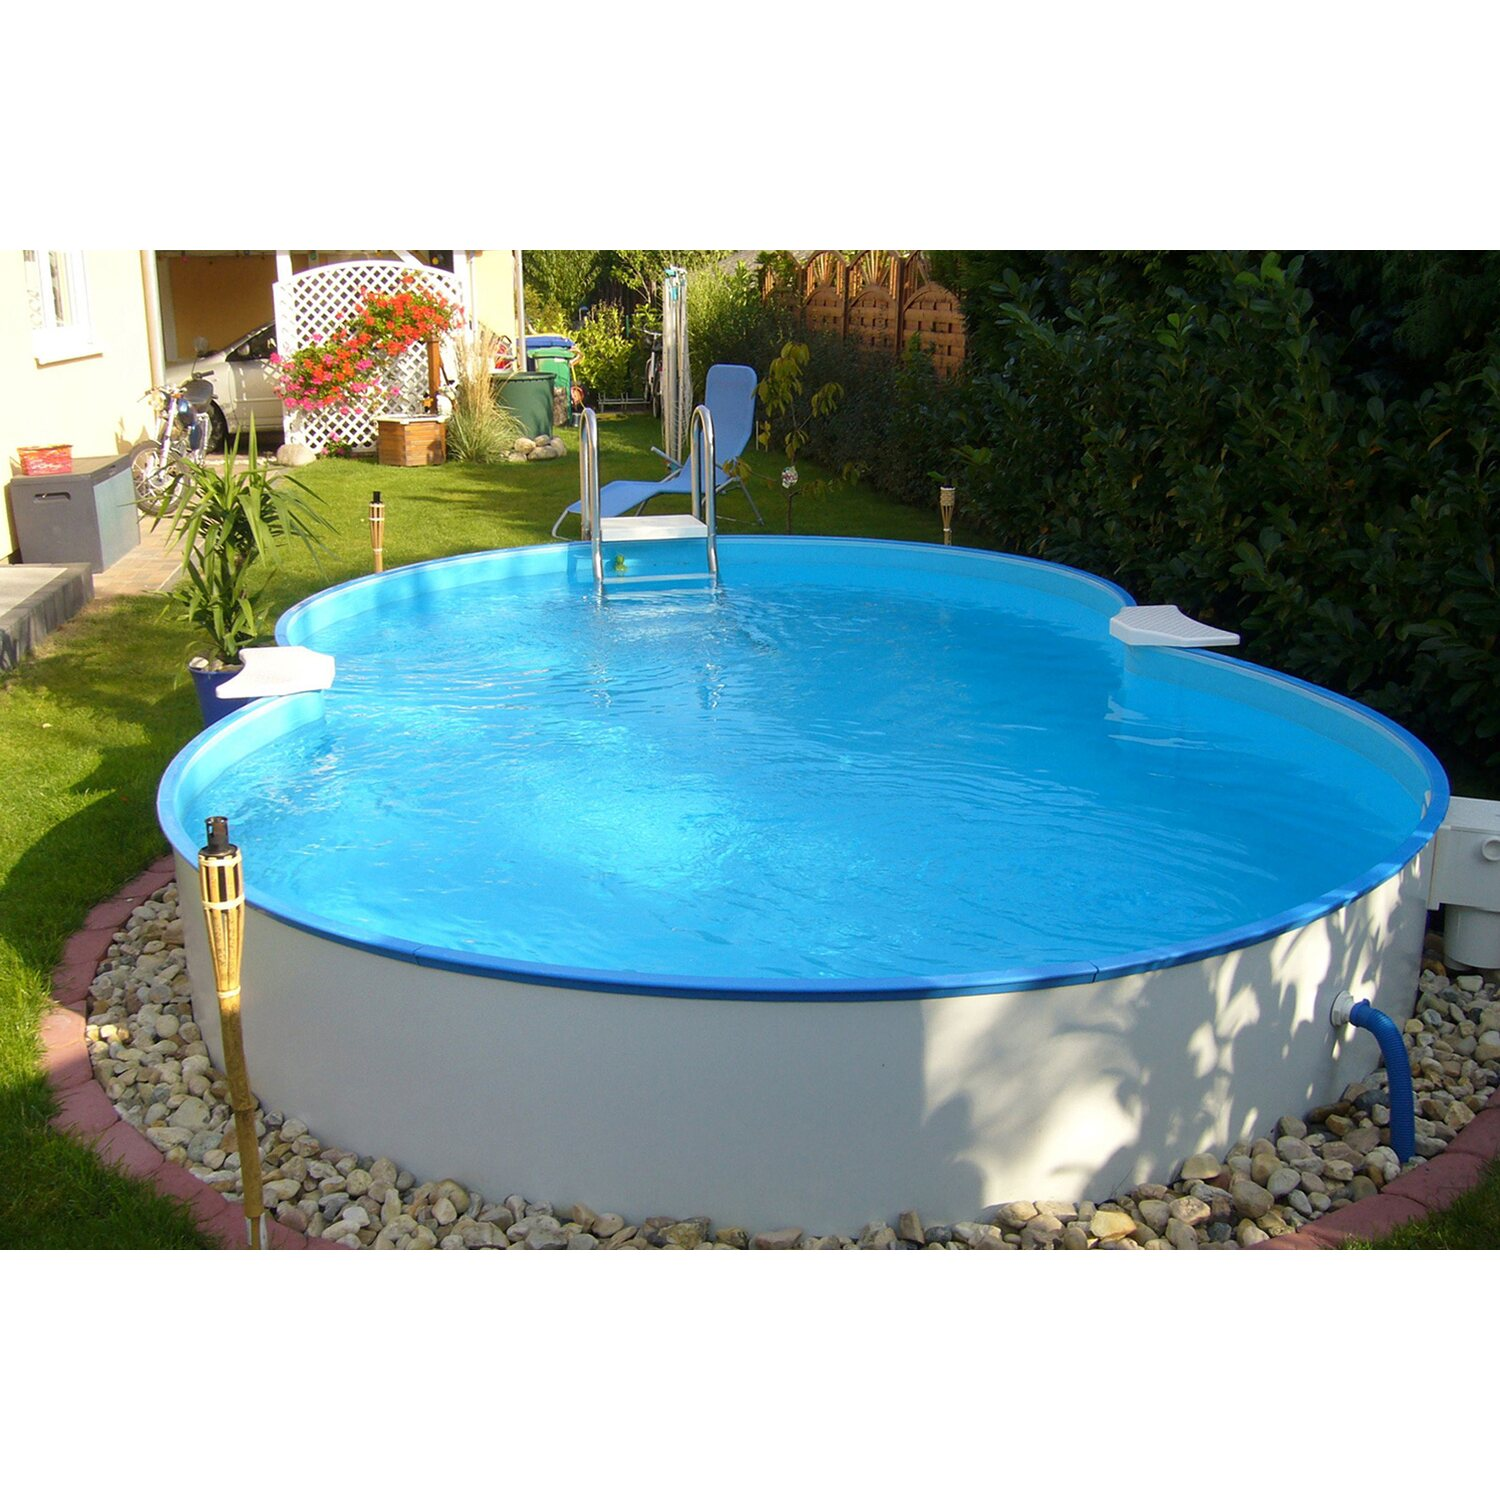 Stahlwand pool set calypso aufstellbecken achtform 525 cm for Obi sandfilteranlage pool